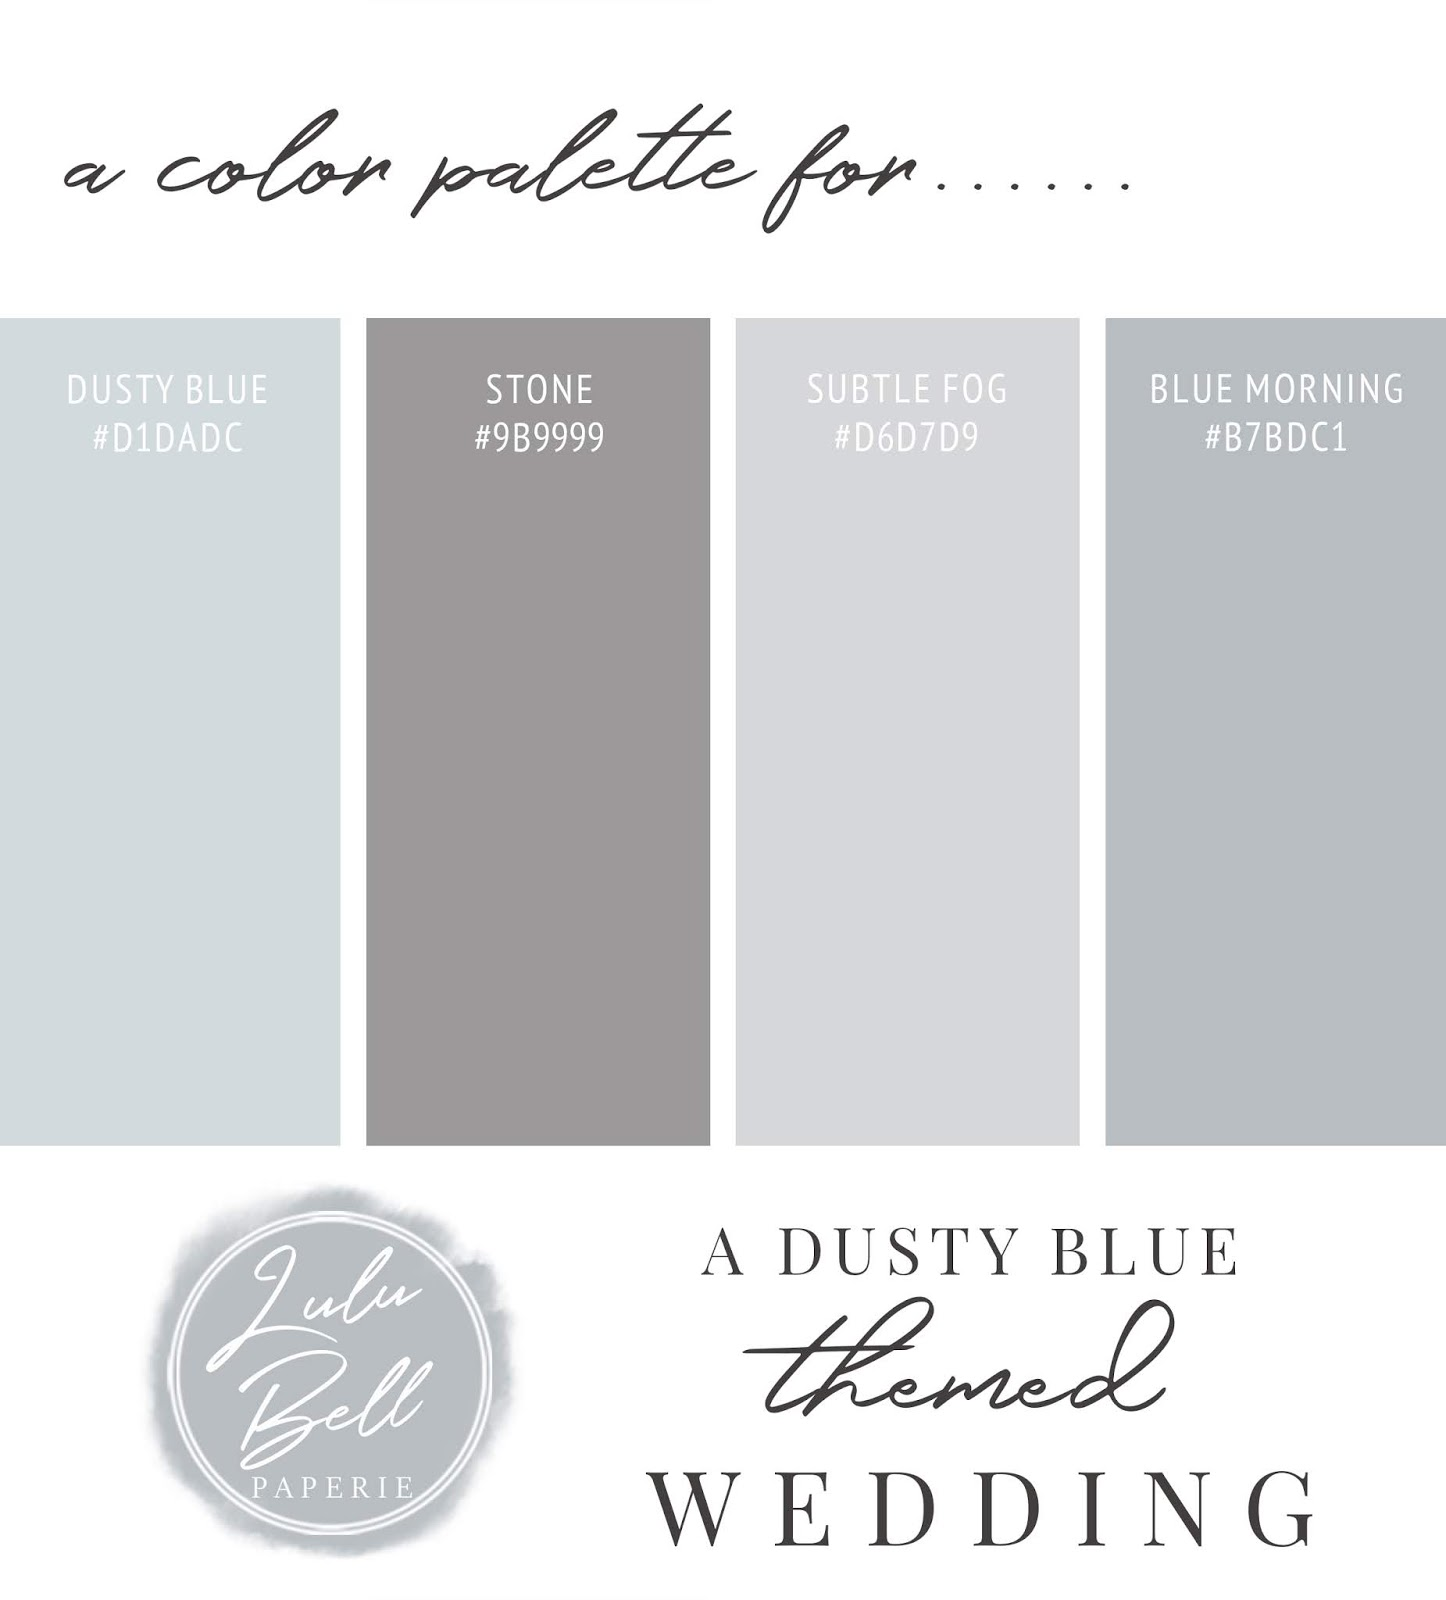 Dusty Blue and Gray Wedding Color Palette Swatch Card : Dusty Blue, Stone Gray, Subtle Fog, and Blue Morning